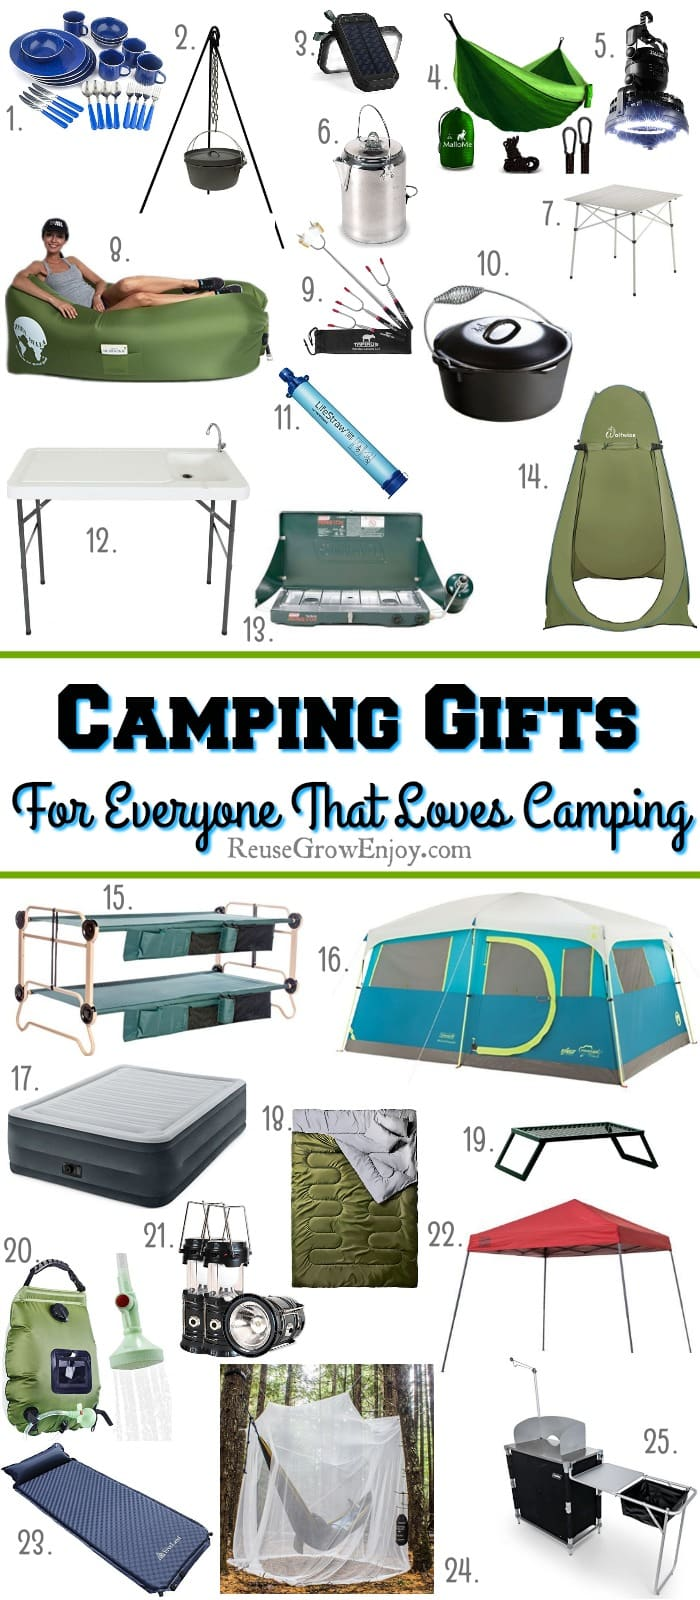 Camping Gifts Gift Ideas For Everyone That Loves Camping